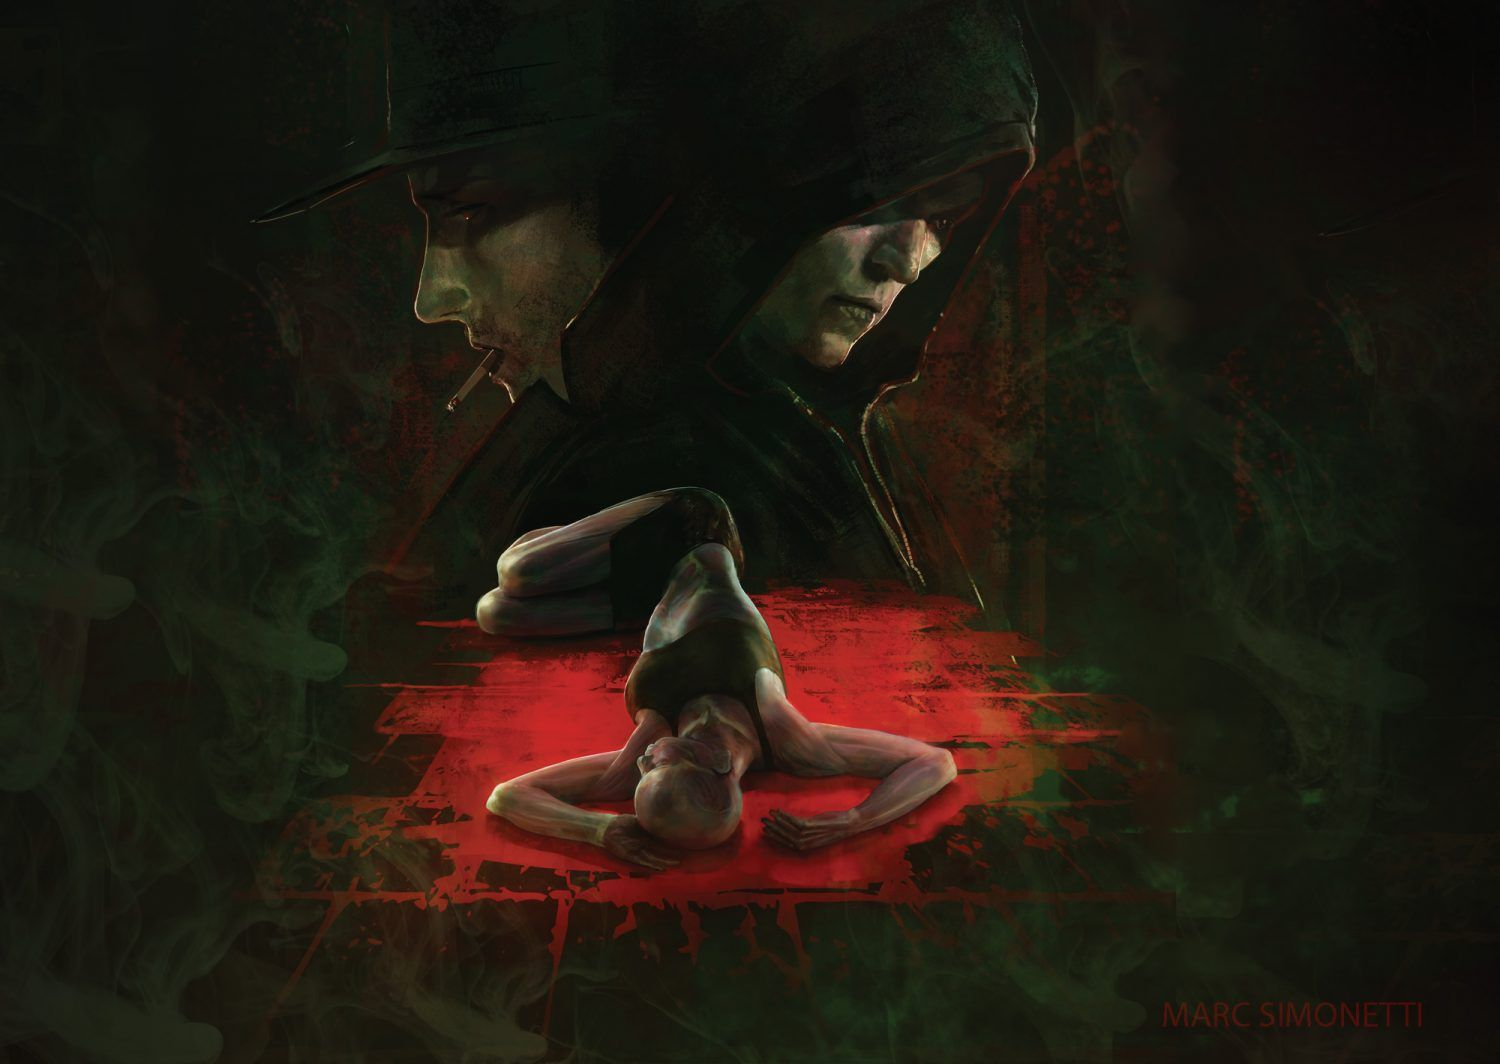 Today S Wildcardsfanfriday Fan Art Feature Is Marc Simonetti S Chrysalis See More Of His Work Here Https Loom Ly Xjhyf C Wild Card Art Digital Artist